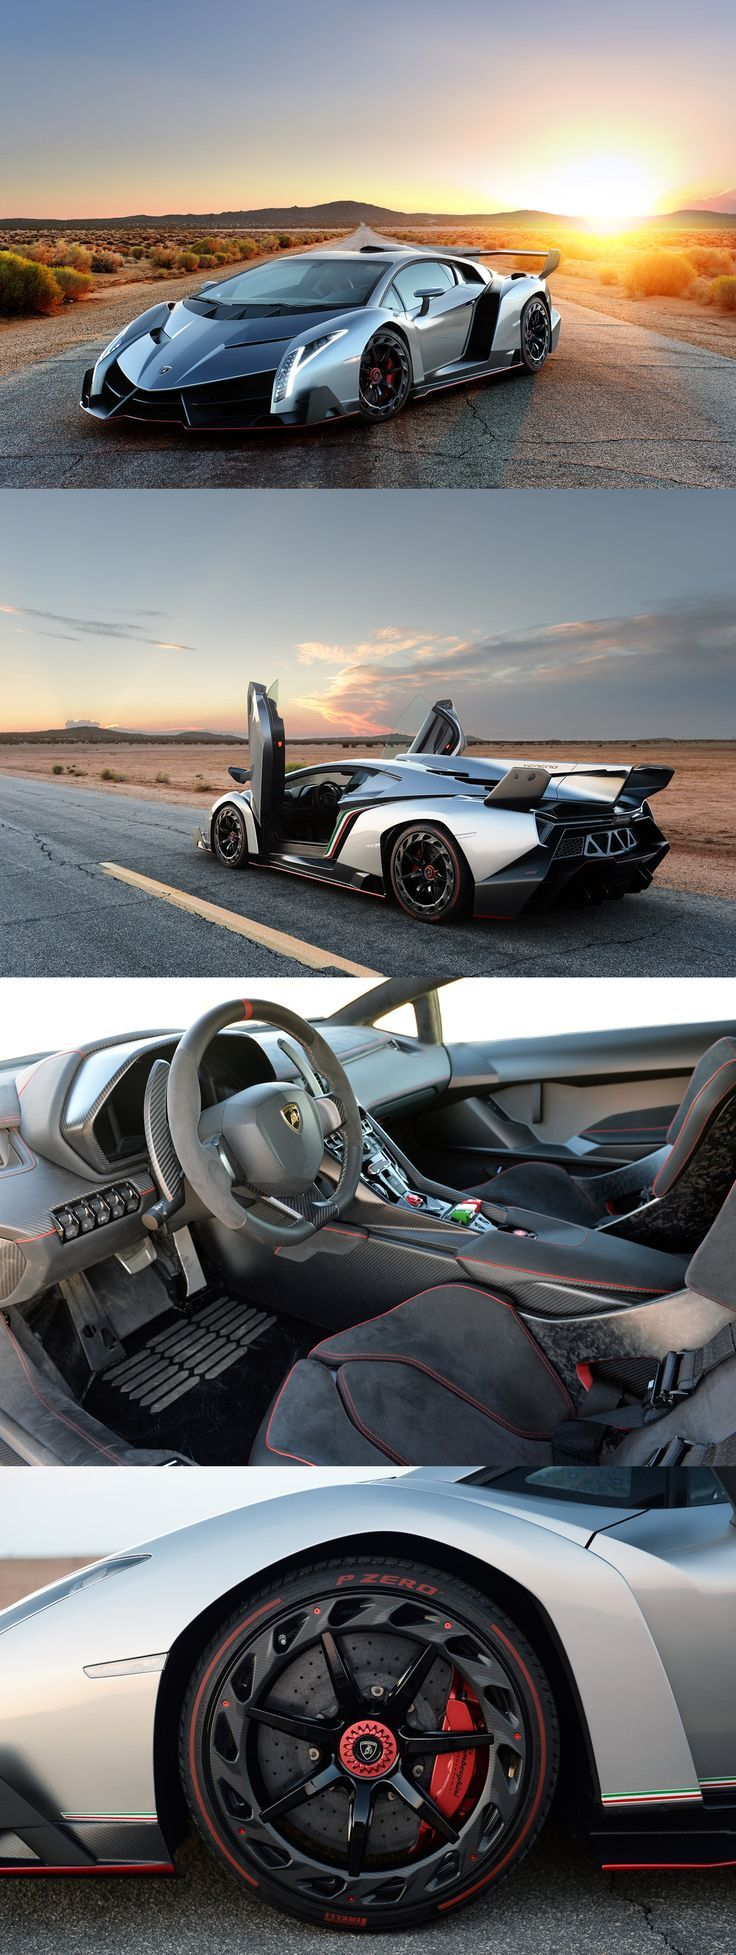 The Lamborghini Veneno - have Lambo got it right with this #hypercar?  SealingsandExpungements.com 888-9-EXPUNGE Free Evaluations--Easy Payments